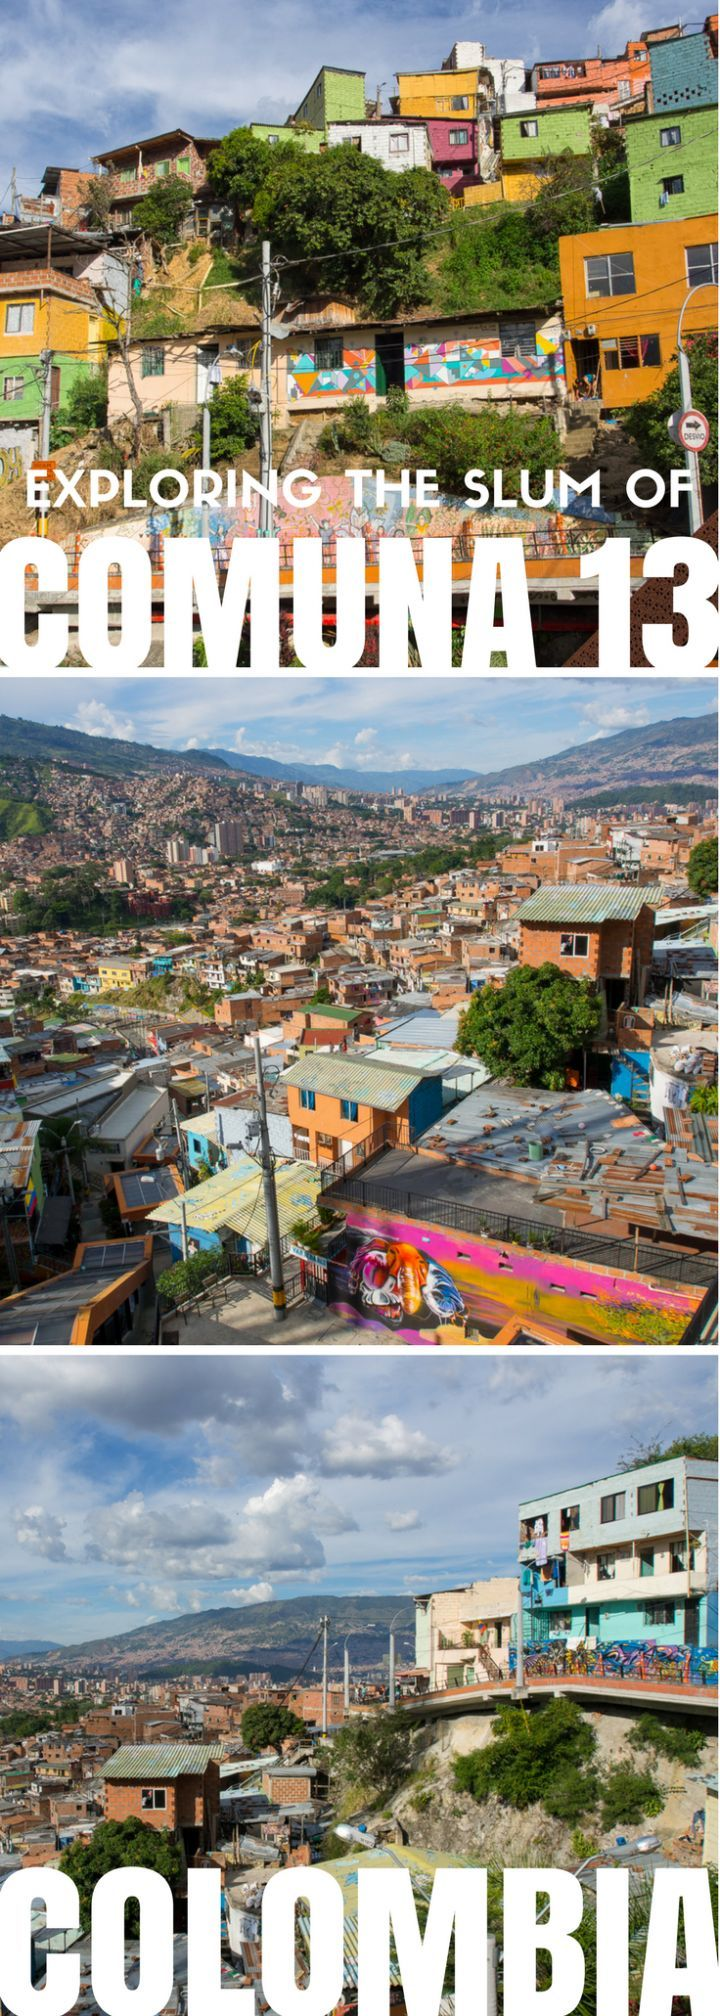 Explore Medellín's Comuna 13, the former murder capital of Colombia, now turned into colorful neighborhood filled with hope.